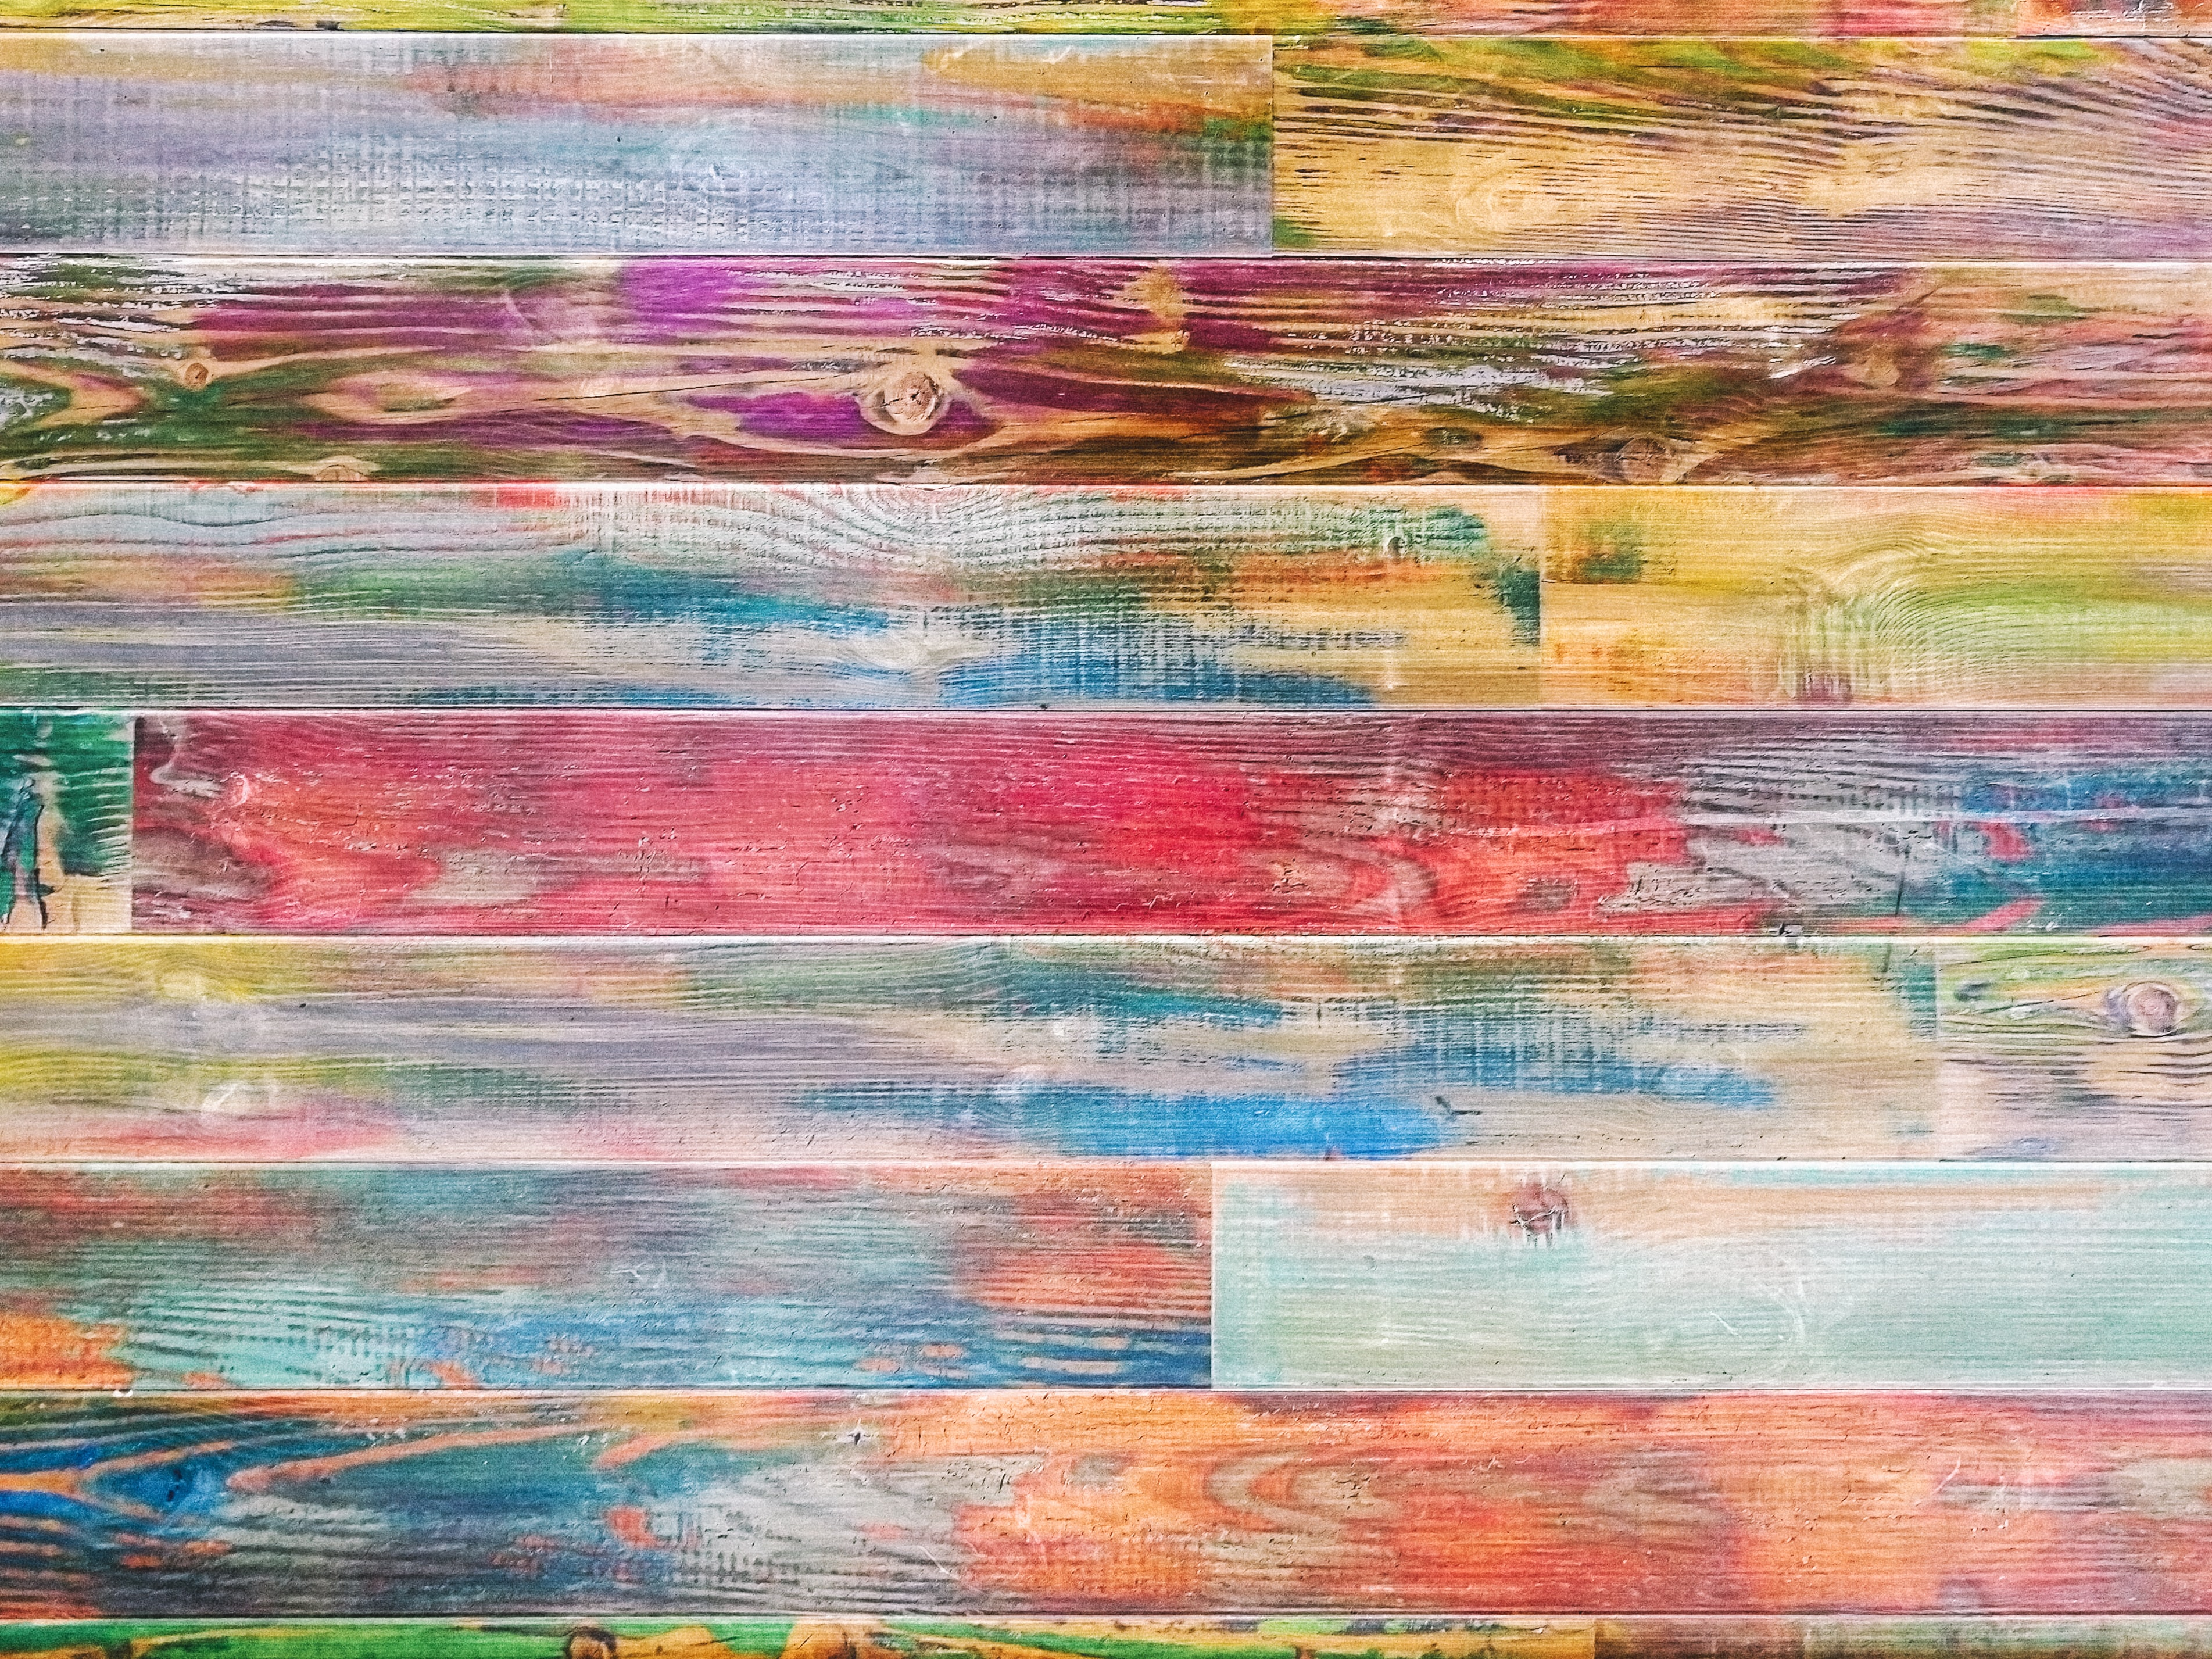 106815 download wallpaper Textures, Texture, Planks, Board, Wood, Wooden, Multicolored, Motley, Paint screensavers and pictures for free